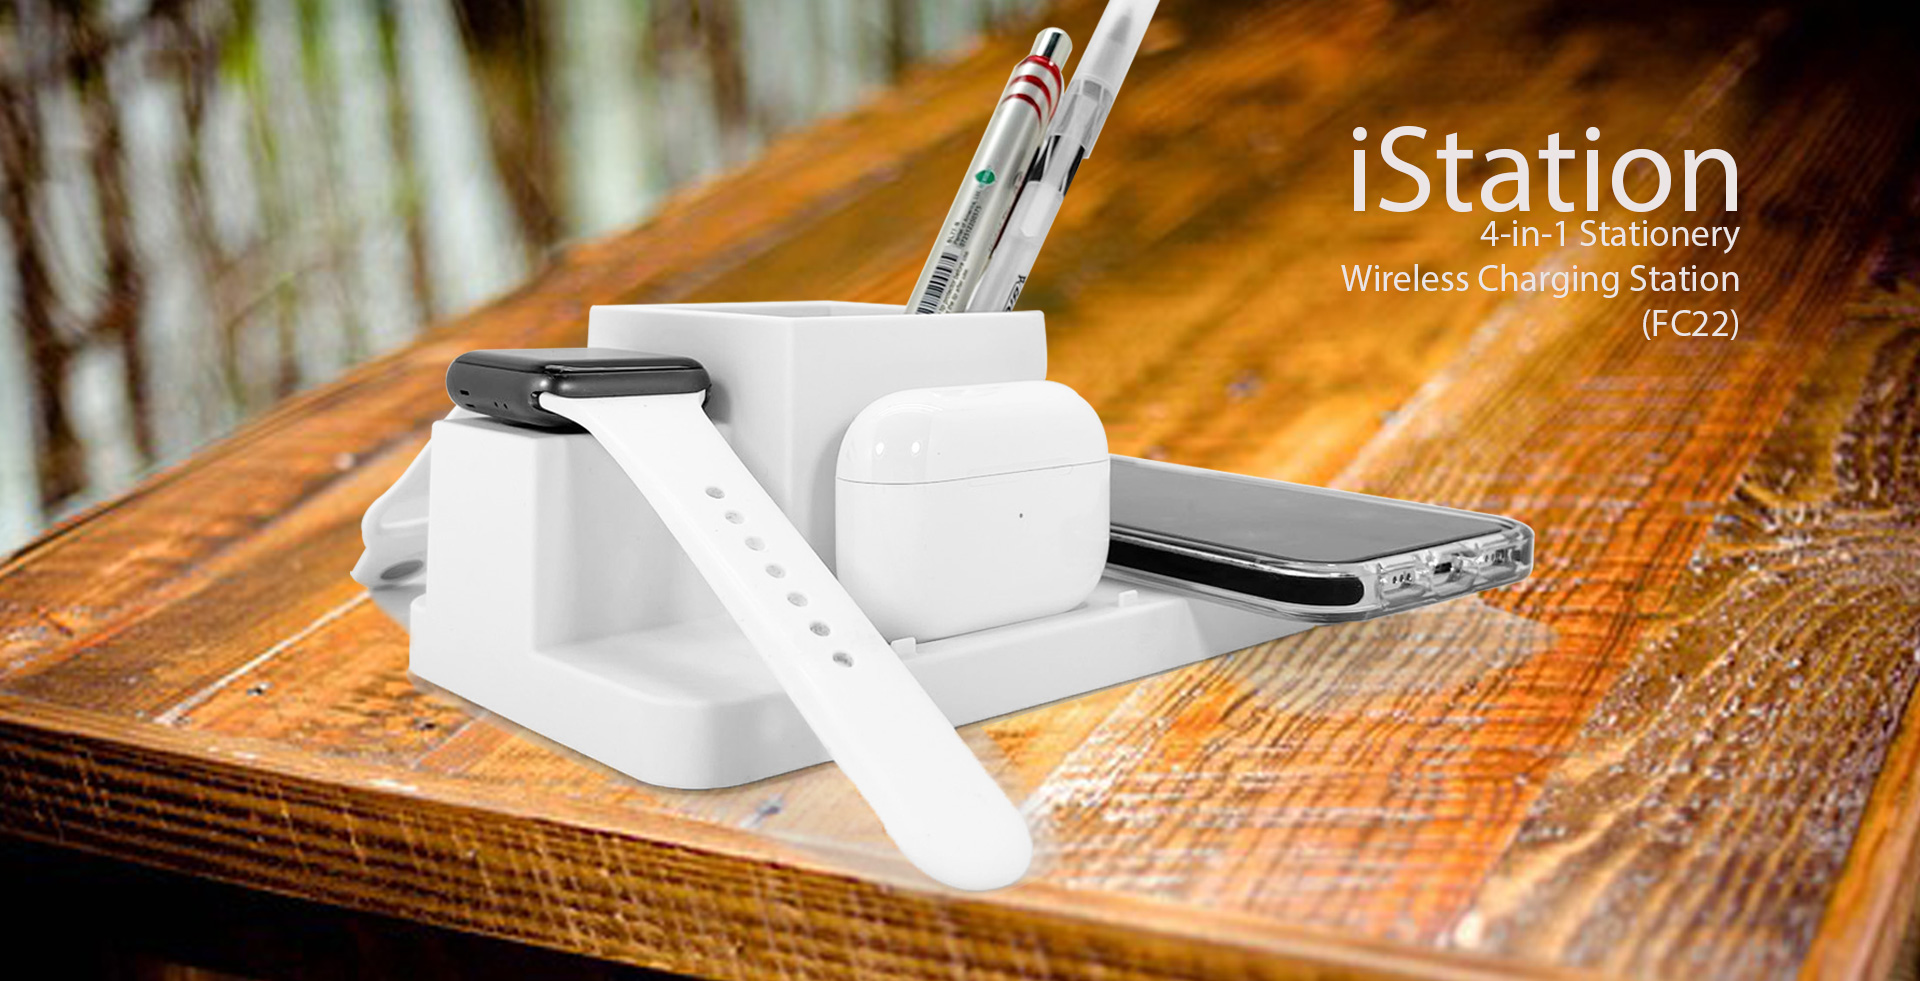 iStation 4-in-1 wireless charger